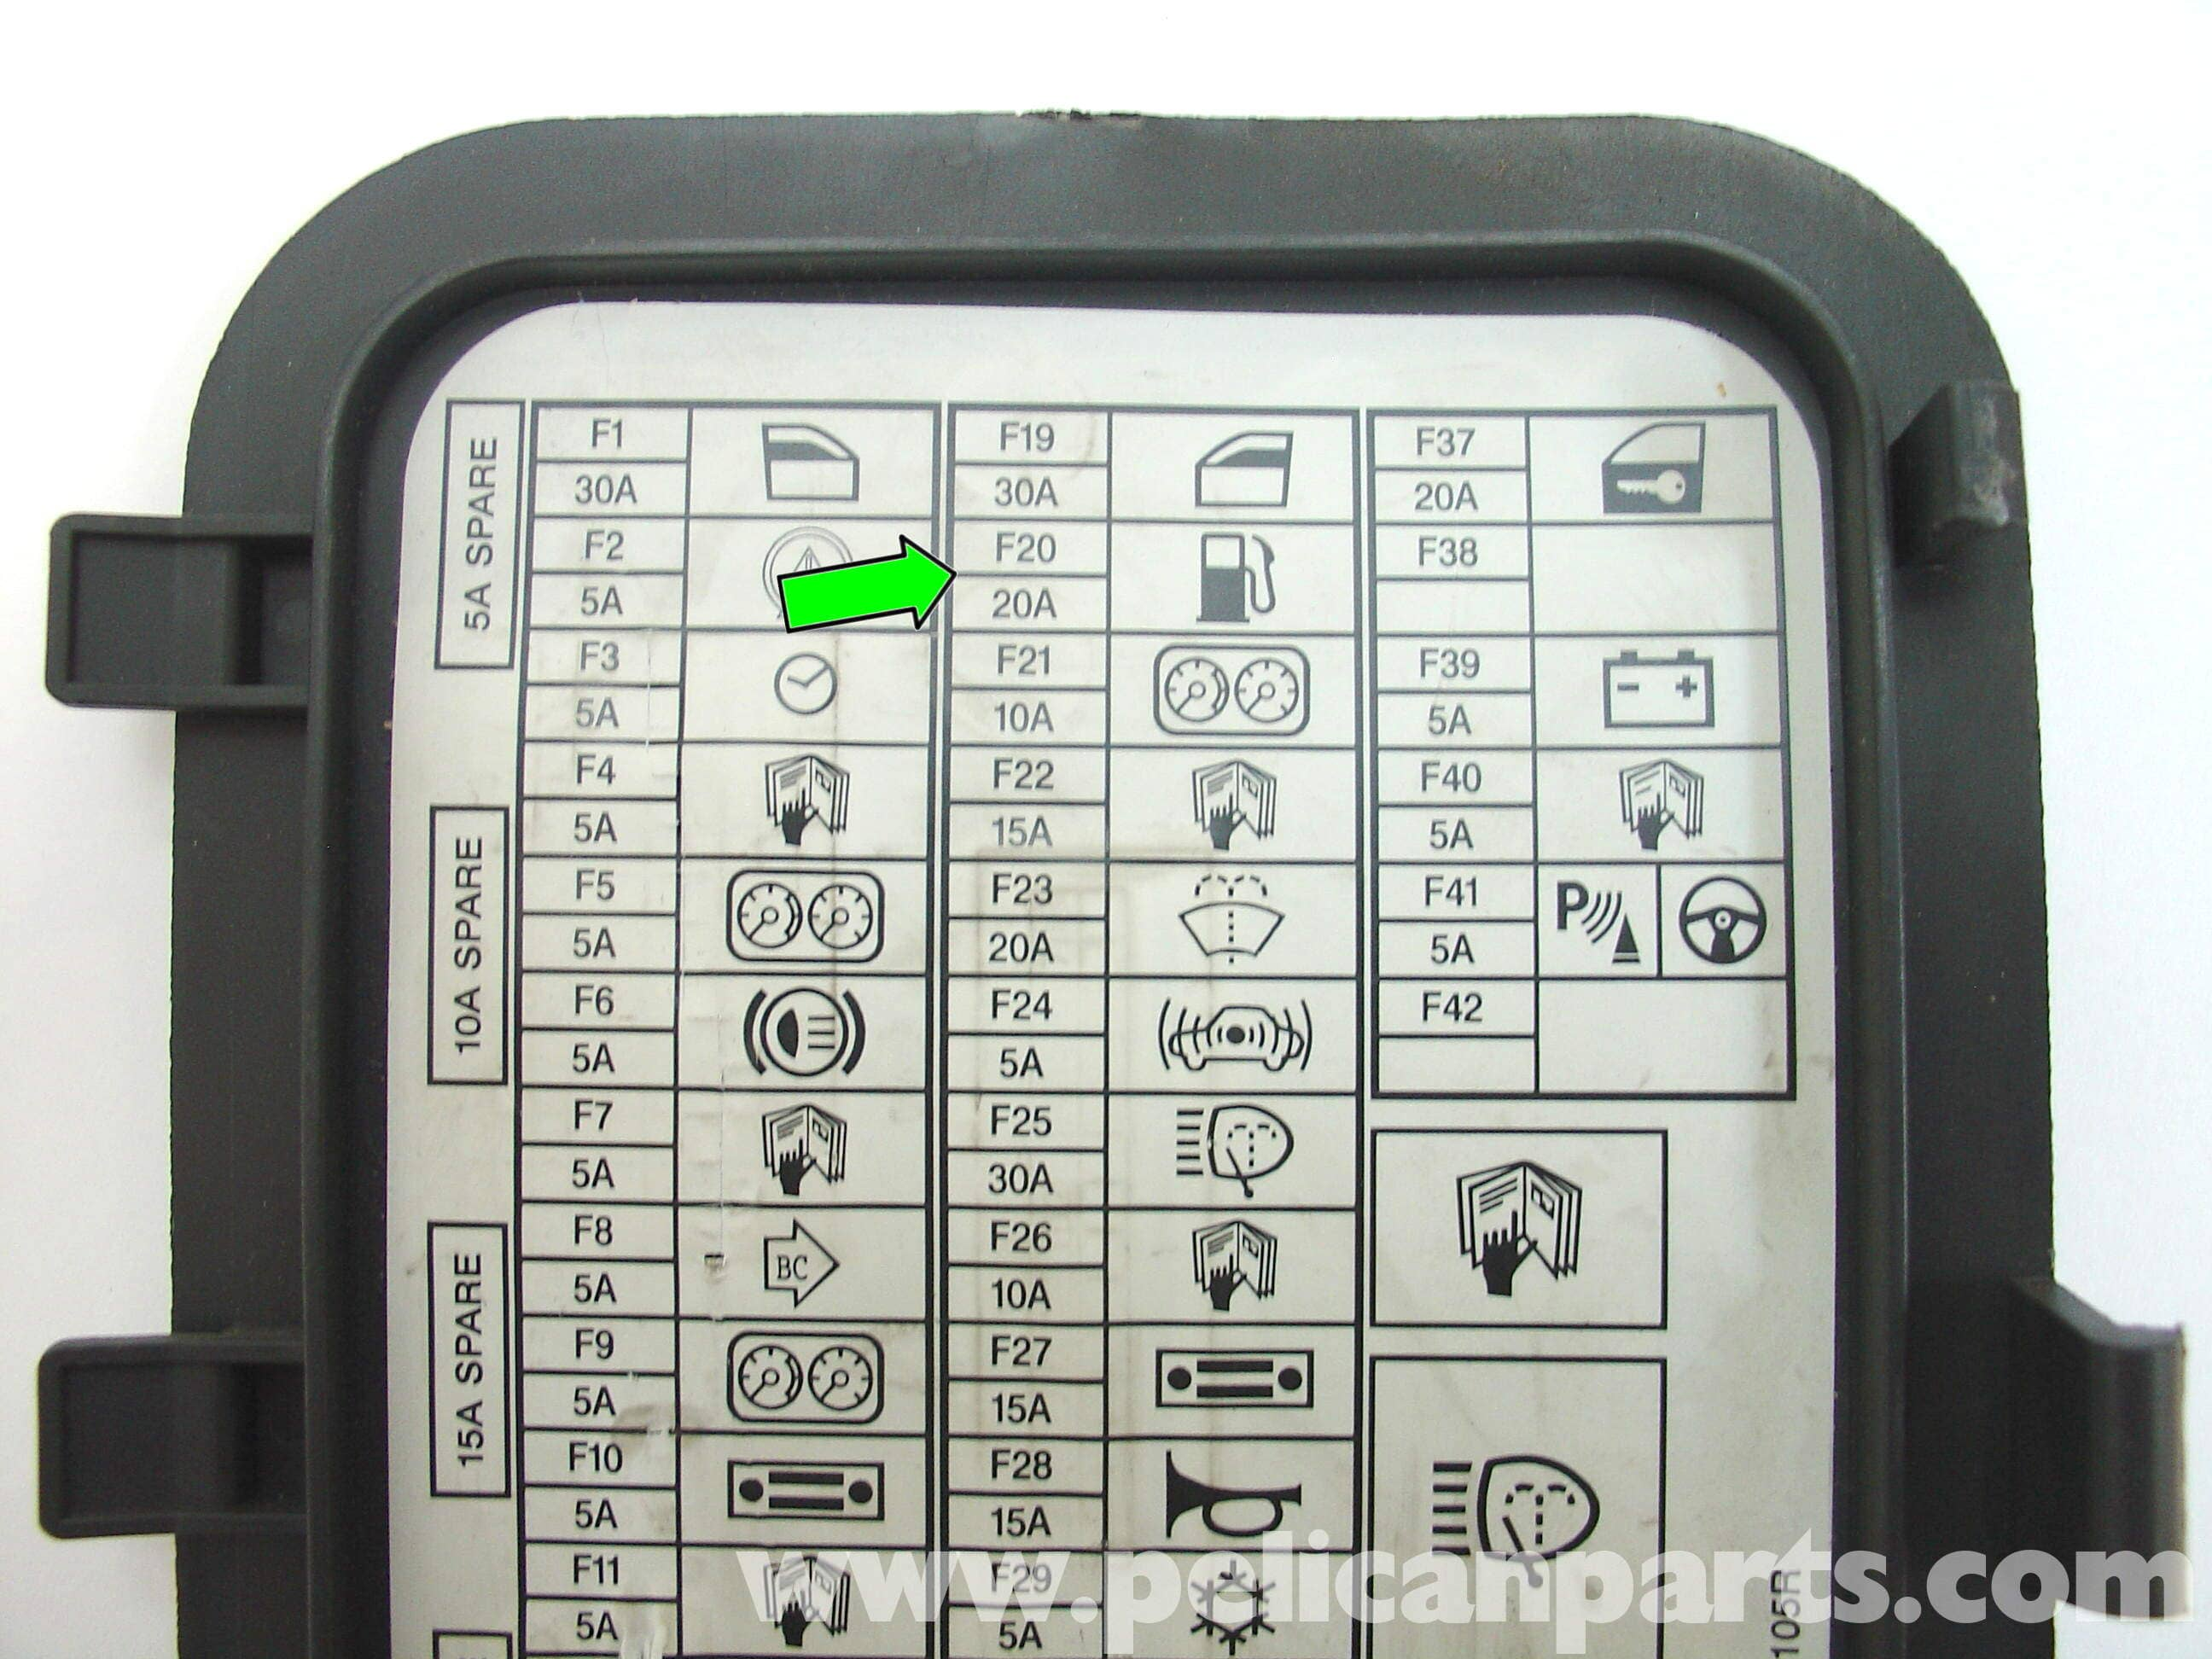 R50 Fuse Box - Wiring Diagram Third Level Wiring Diagram Mini Cooper on mini parts diagram, mini cooper hid retrofit, mini cooper lighter fuse, mini cooper exhaust system diagram, mini cooper underneath diagram, mini cooper start switch, mini cooper flywheel, mini cooper tractor, mini cooper ac diagram, mini cooper transmission diagram, mini cooper amp location, mini cooper fuses diagram, mini cooper circuit, mini cooper coolant diagram, mini cooper roof diagram, mini puddle lights, mini cooper schematics, mini cooper crankshaft, mini cooper drivetrain diagram, mini cooper wiring harness,